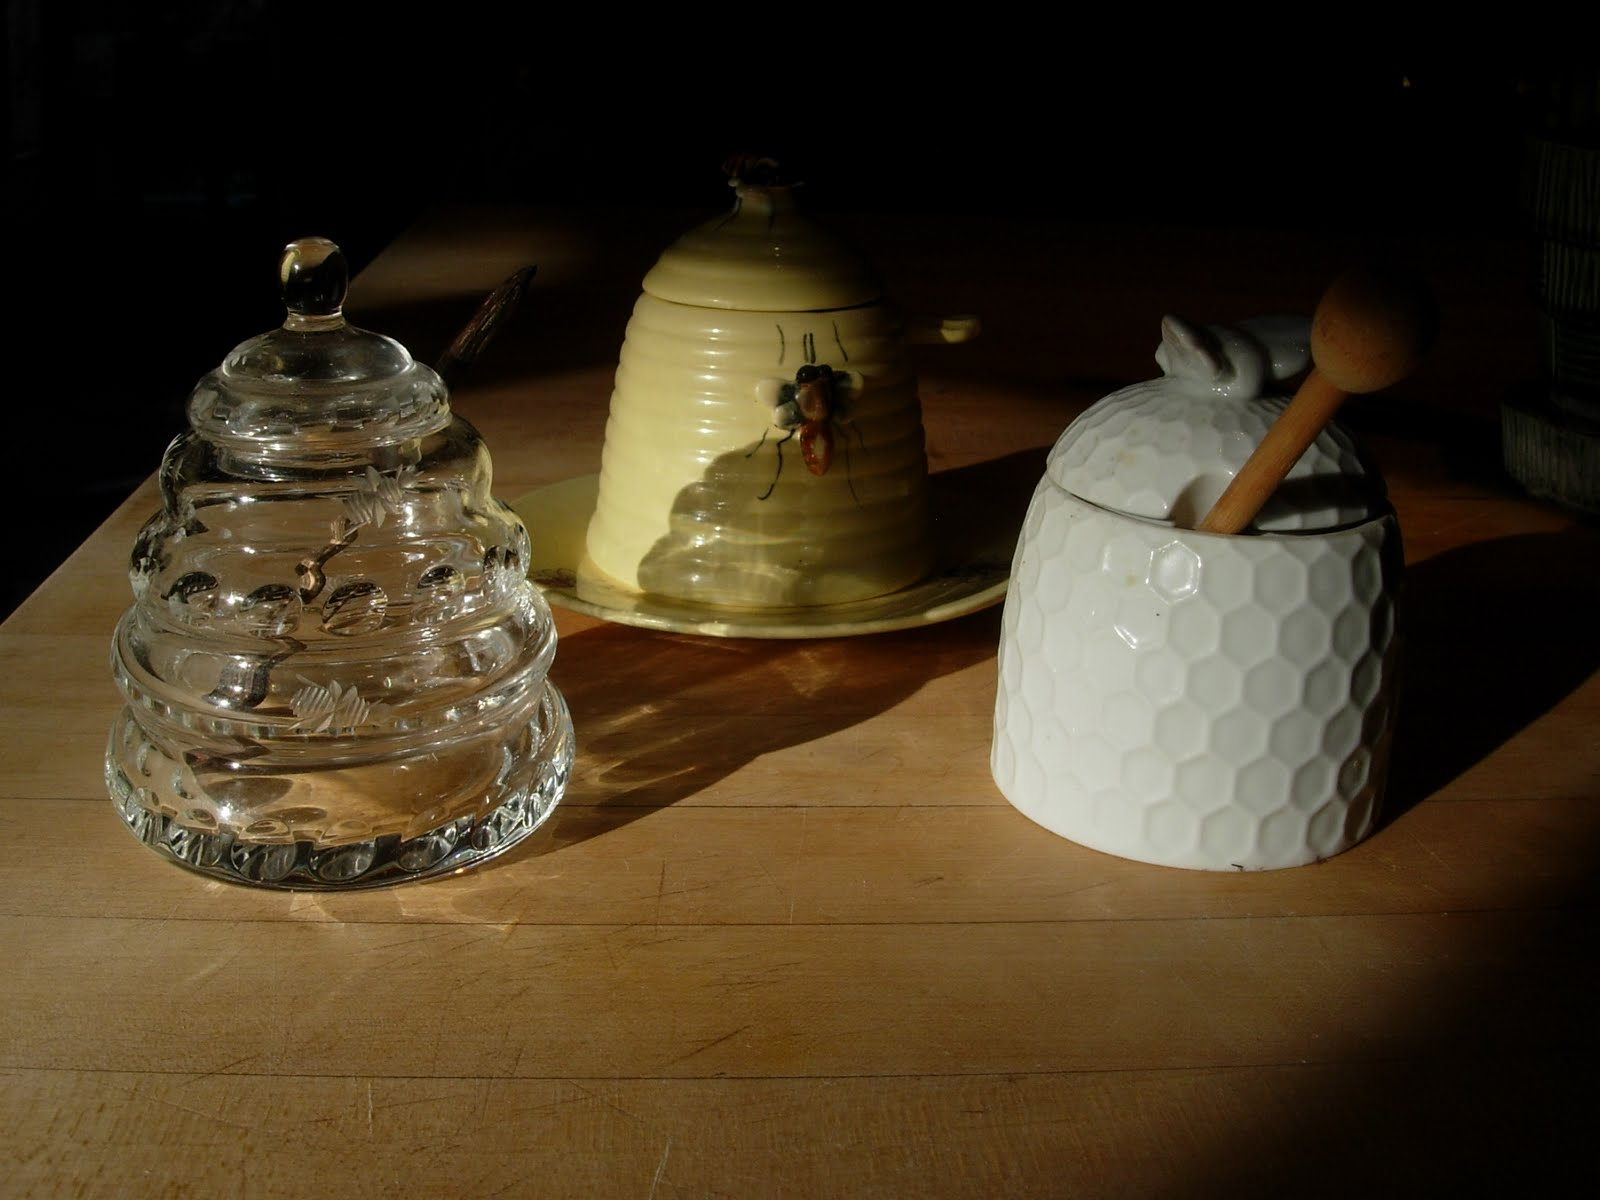 Beehive ornament - A Beekeeper Nutcracker A Beehive Ornament And An Array Of Honey Utensils